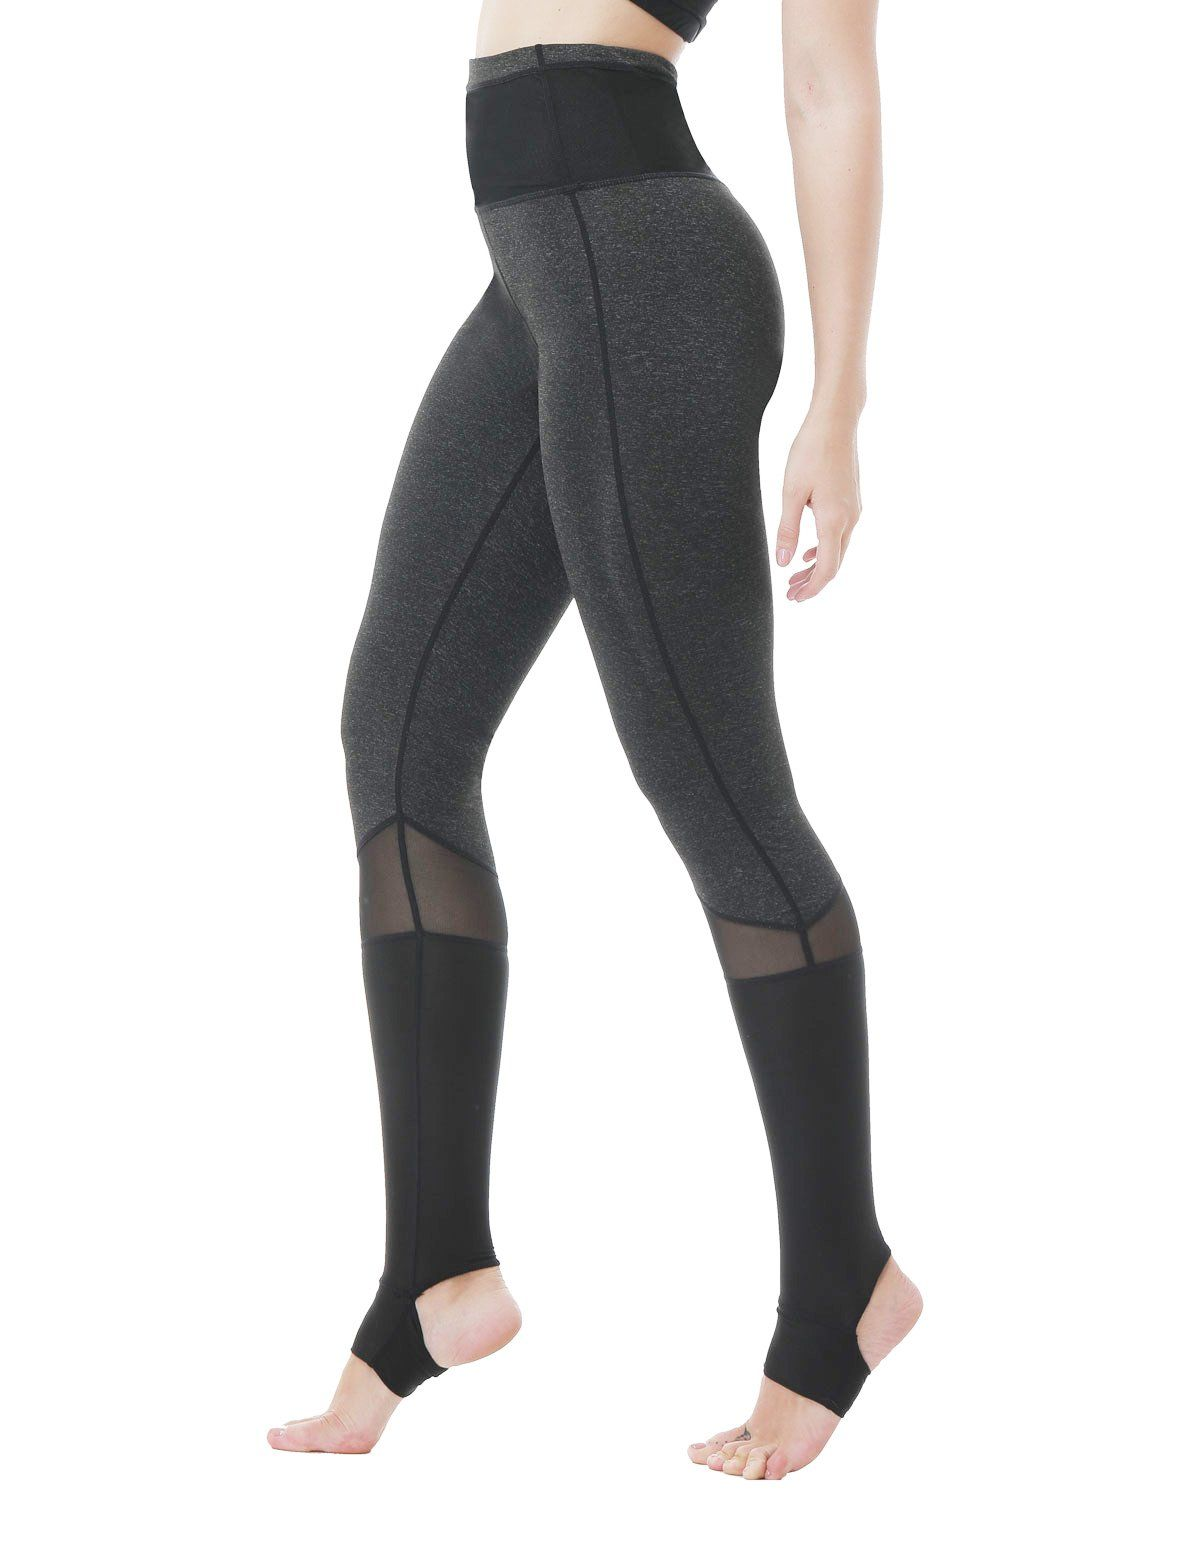 1cb1827d957a Feeker Women's High Waist Yoga Capri Pants, Black Cotton Mesh Workout Capri  Leggings, Tights for Gym, Running, Yoga. Crisscross Stirrup Tights:Heel  cut-out ...